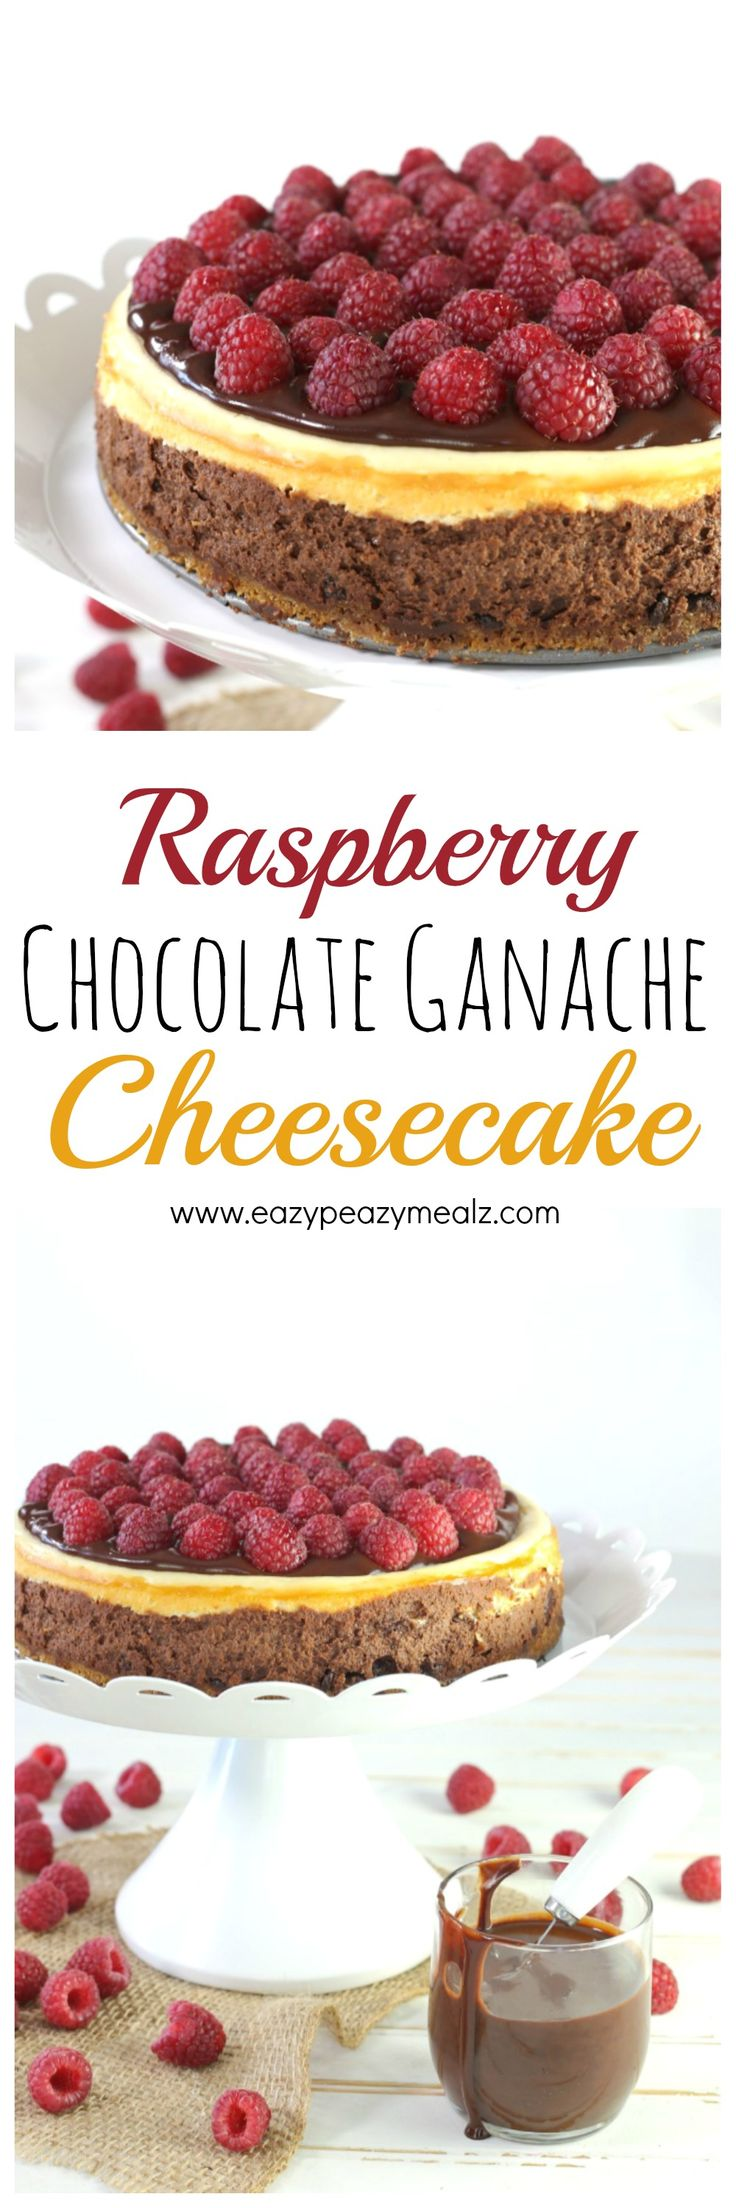 Rich chocolate cheesecake, a layer of vanilla cheesecake, an amazing chocolate ganache, and fresh raspberries. This cheesecake is easy to make and perfect for any occassion. - Eazy Peazy Mealz